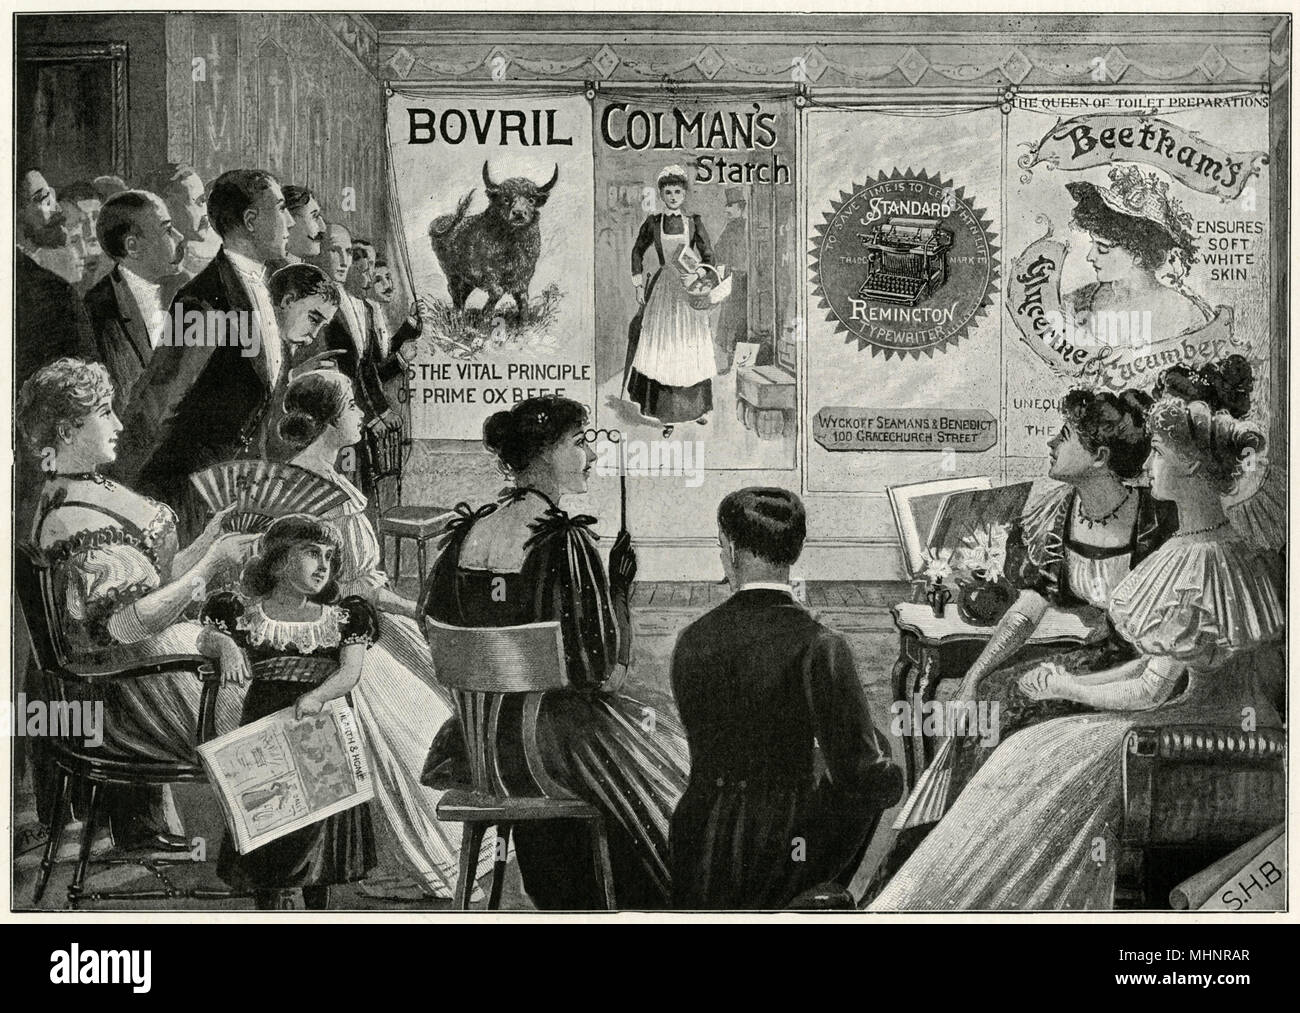 A private view of one of the collections, hobby that came into fashion, enthusiasts are giving up large rooms for the purpose of properly displaying the posters, which were mounted on canvas and rolled up and down like ordinary blinds.     Date: 1896 - Stock Image